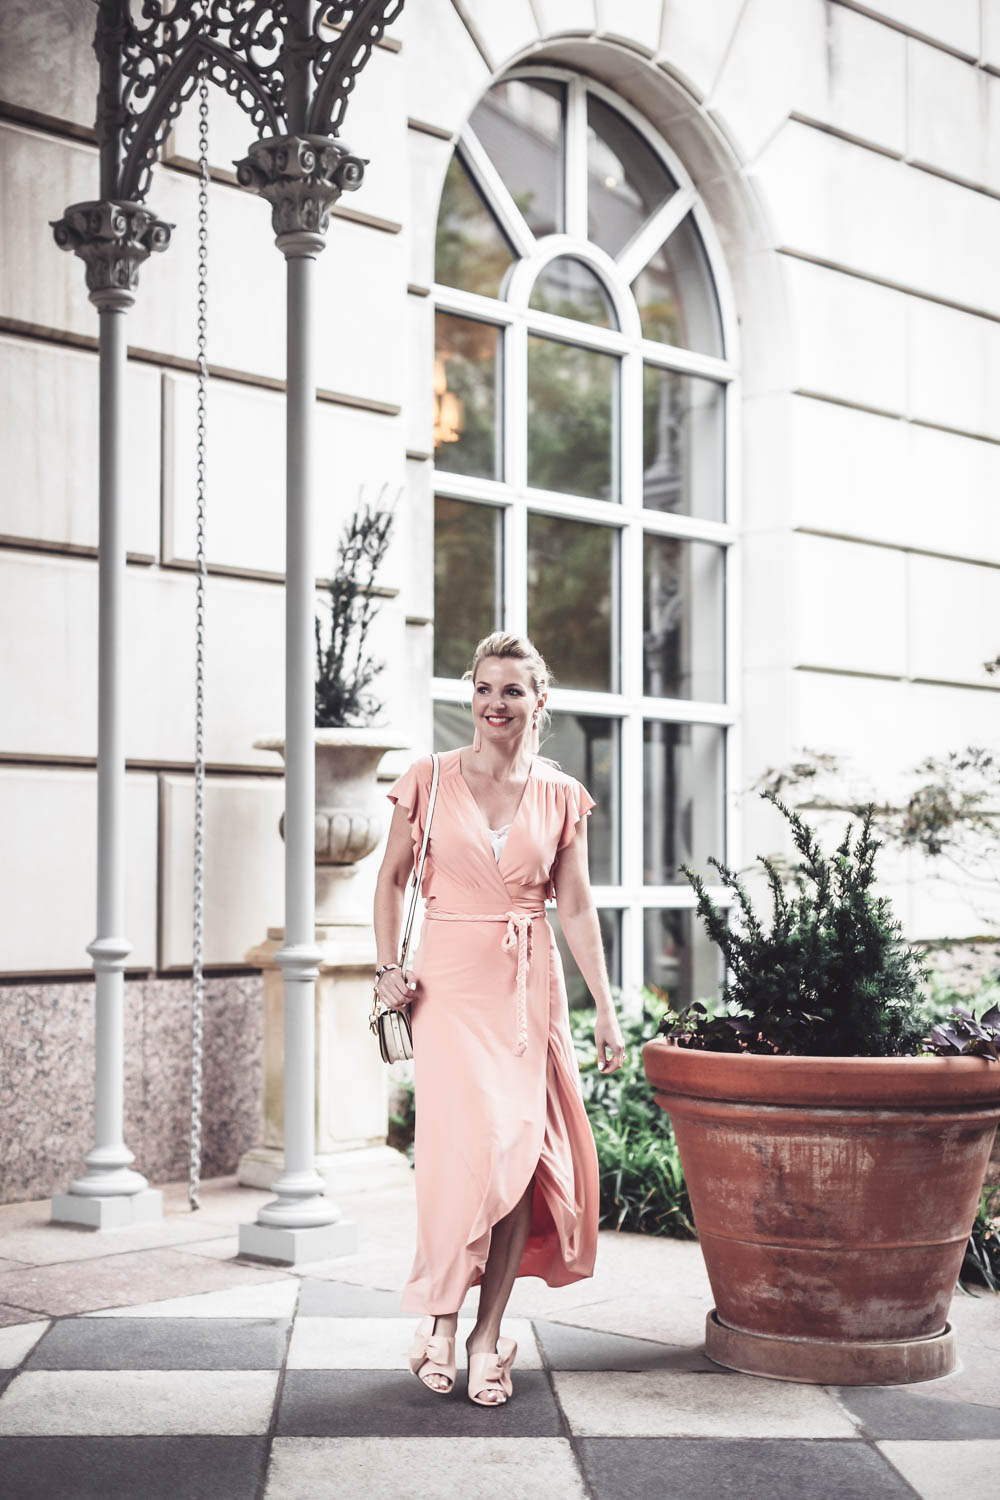 Peach dress by Misa from Revolve Clothing on fashion blogger and youtuber, Erin Busbee, San antonio, Texas, at the Crescent hotel in Dallas for the Reward style conference